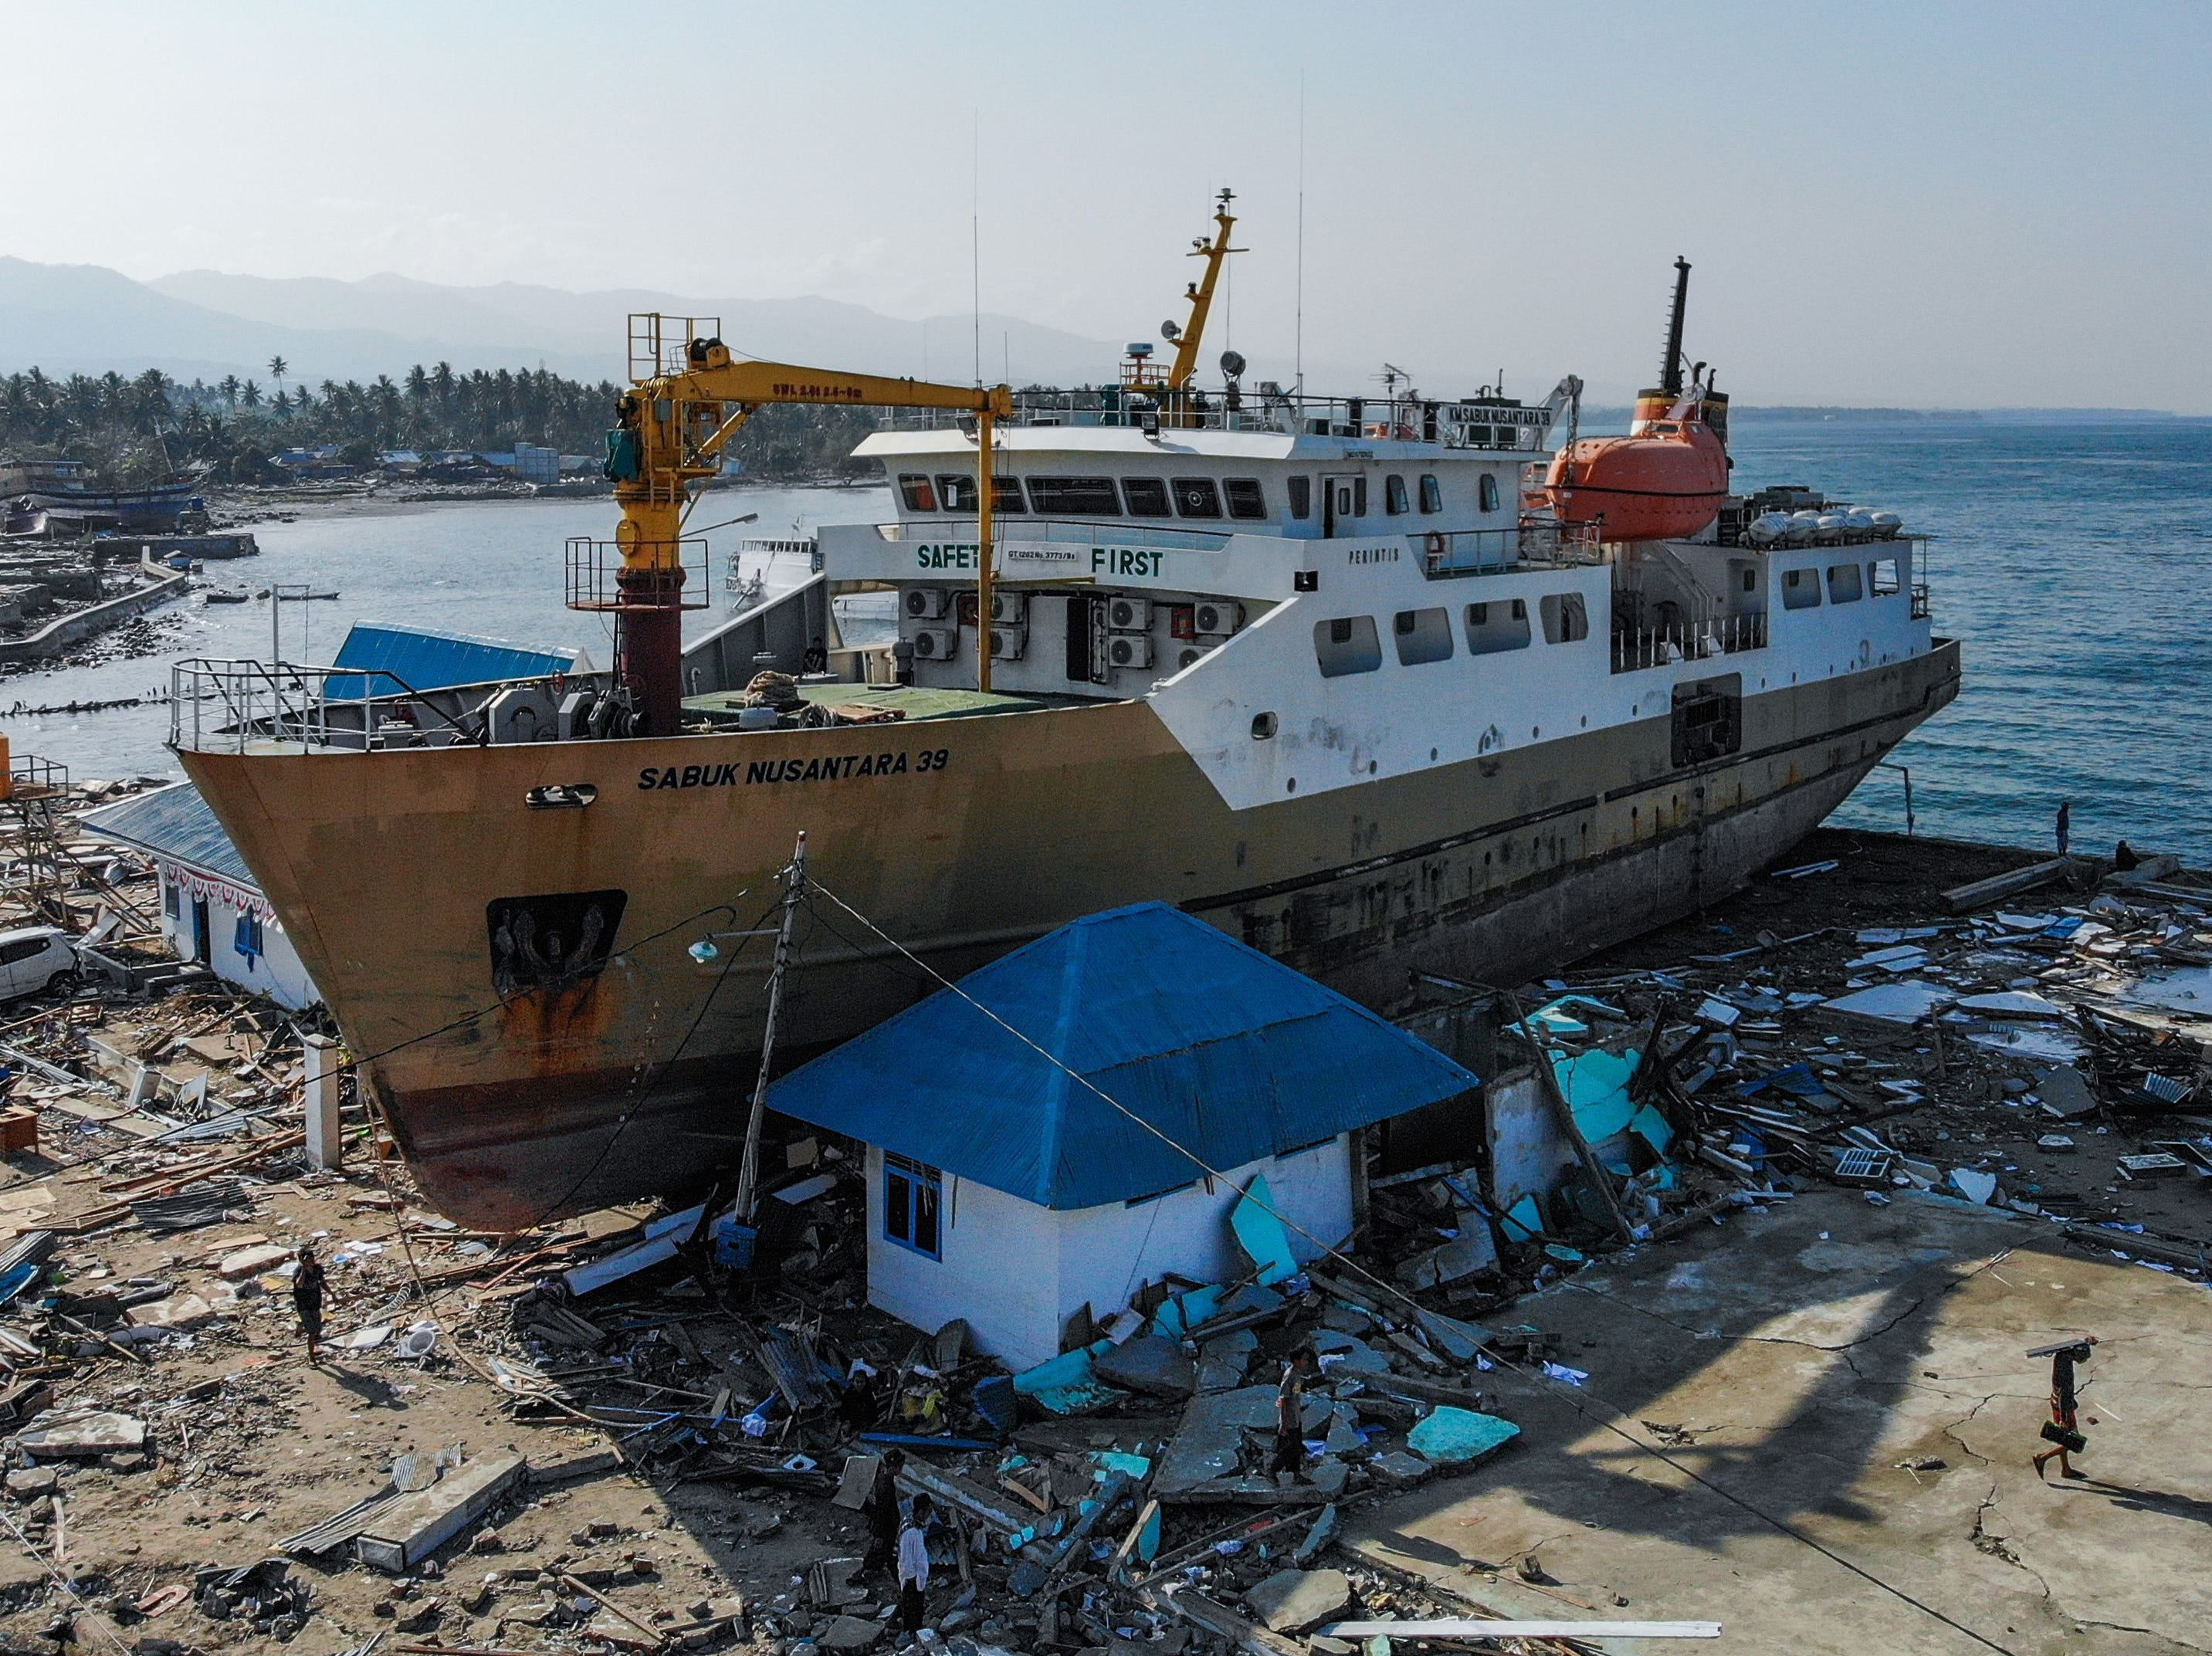 A  passenger ferry  washed ashore into buildings in Wani, Central Sulawesi, Indonesia, after an earthquake and tsunami hit the area on September 28.